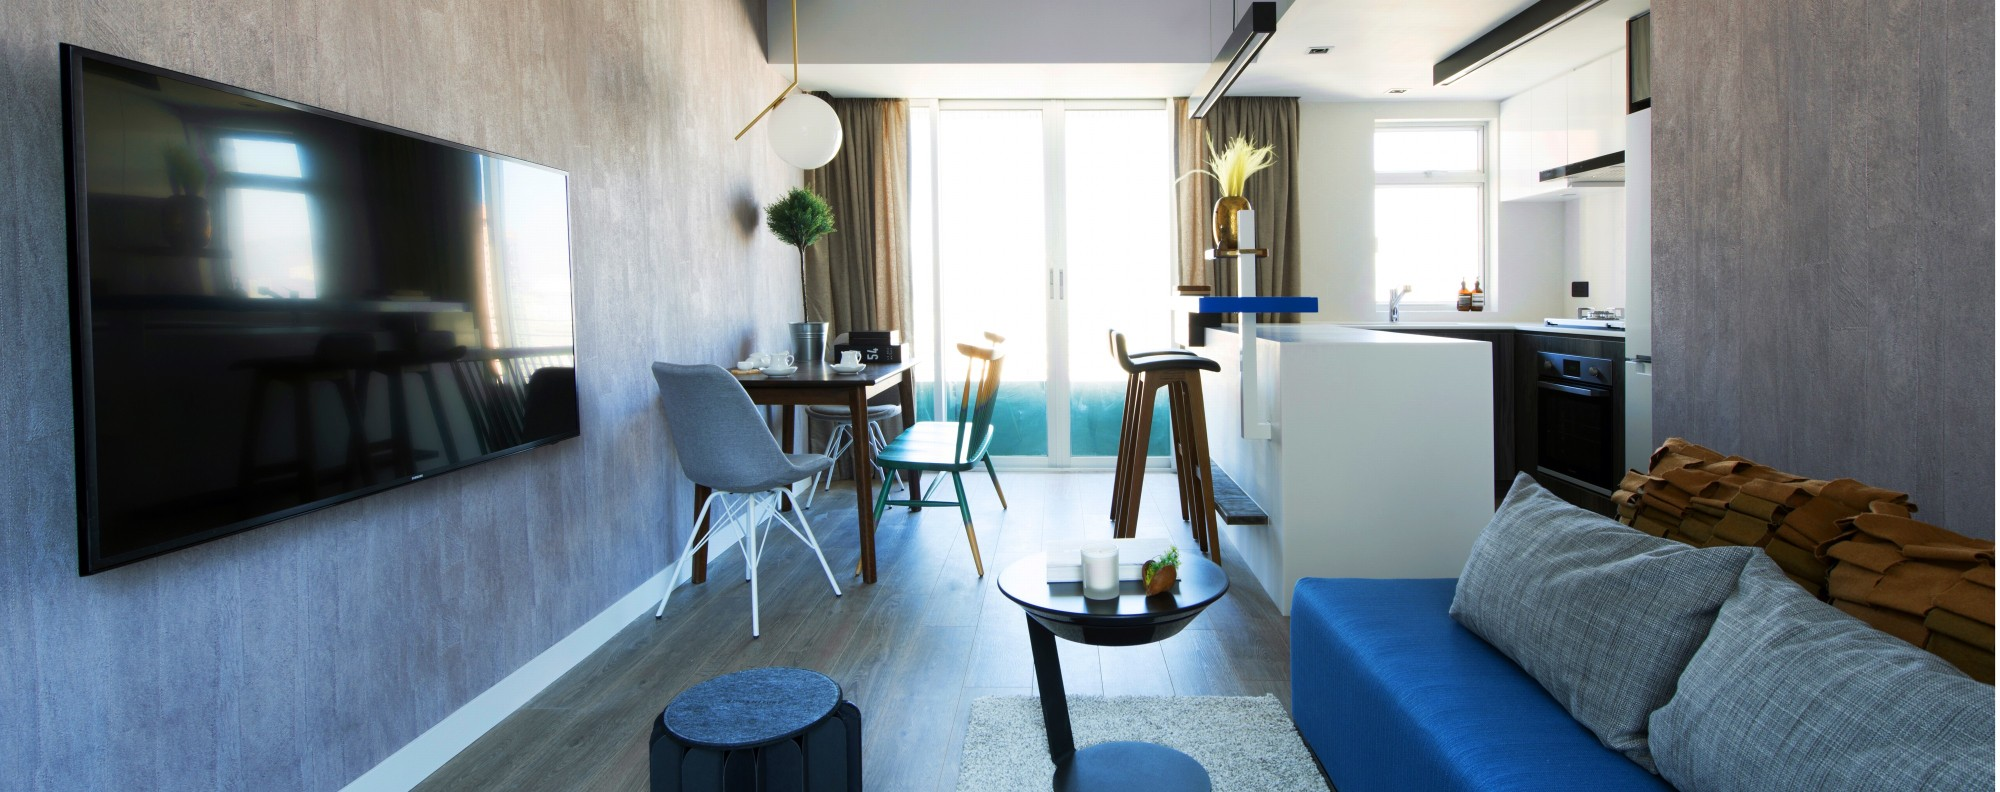 A Hong Kong bachelor pad gets a bold, bright and blue update | Post ...